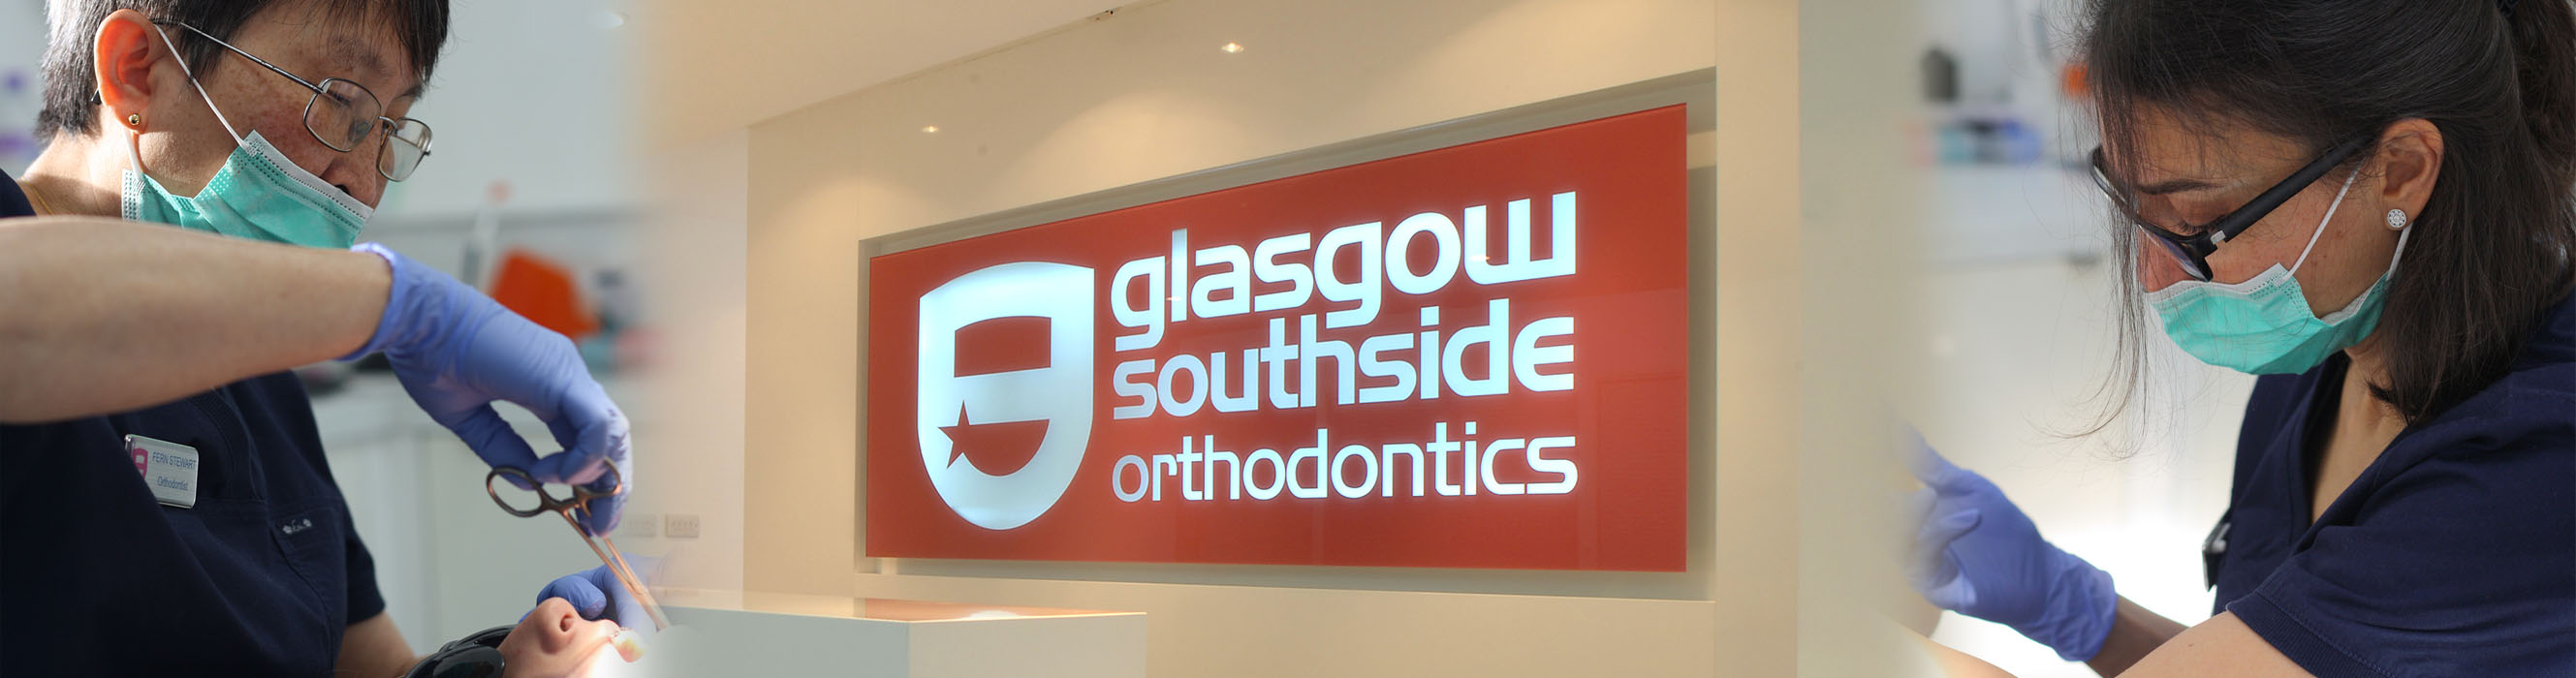 Welcome to Glasgow Southside Orthodontics